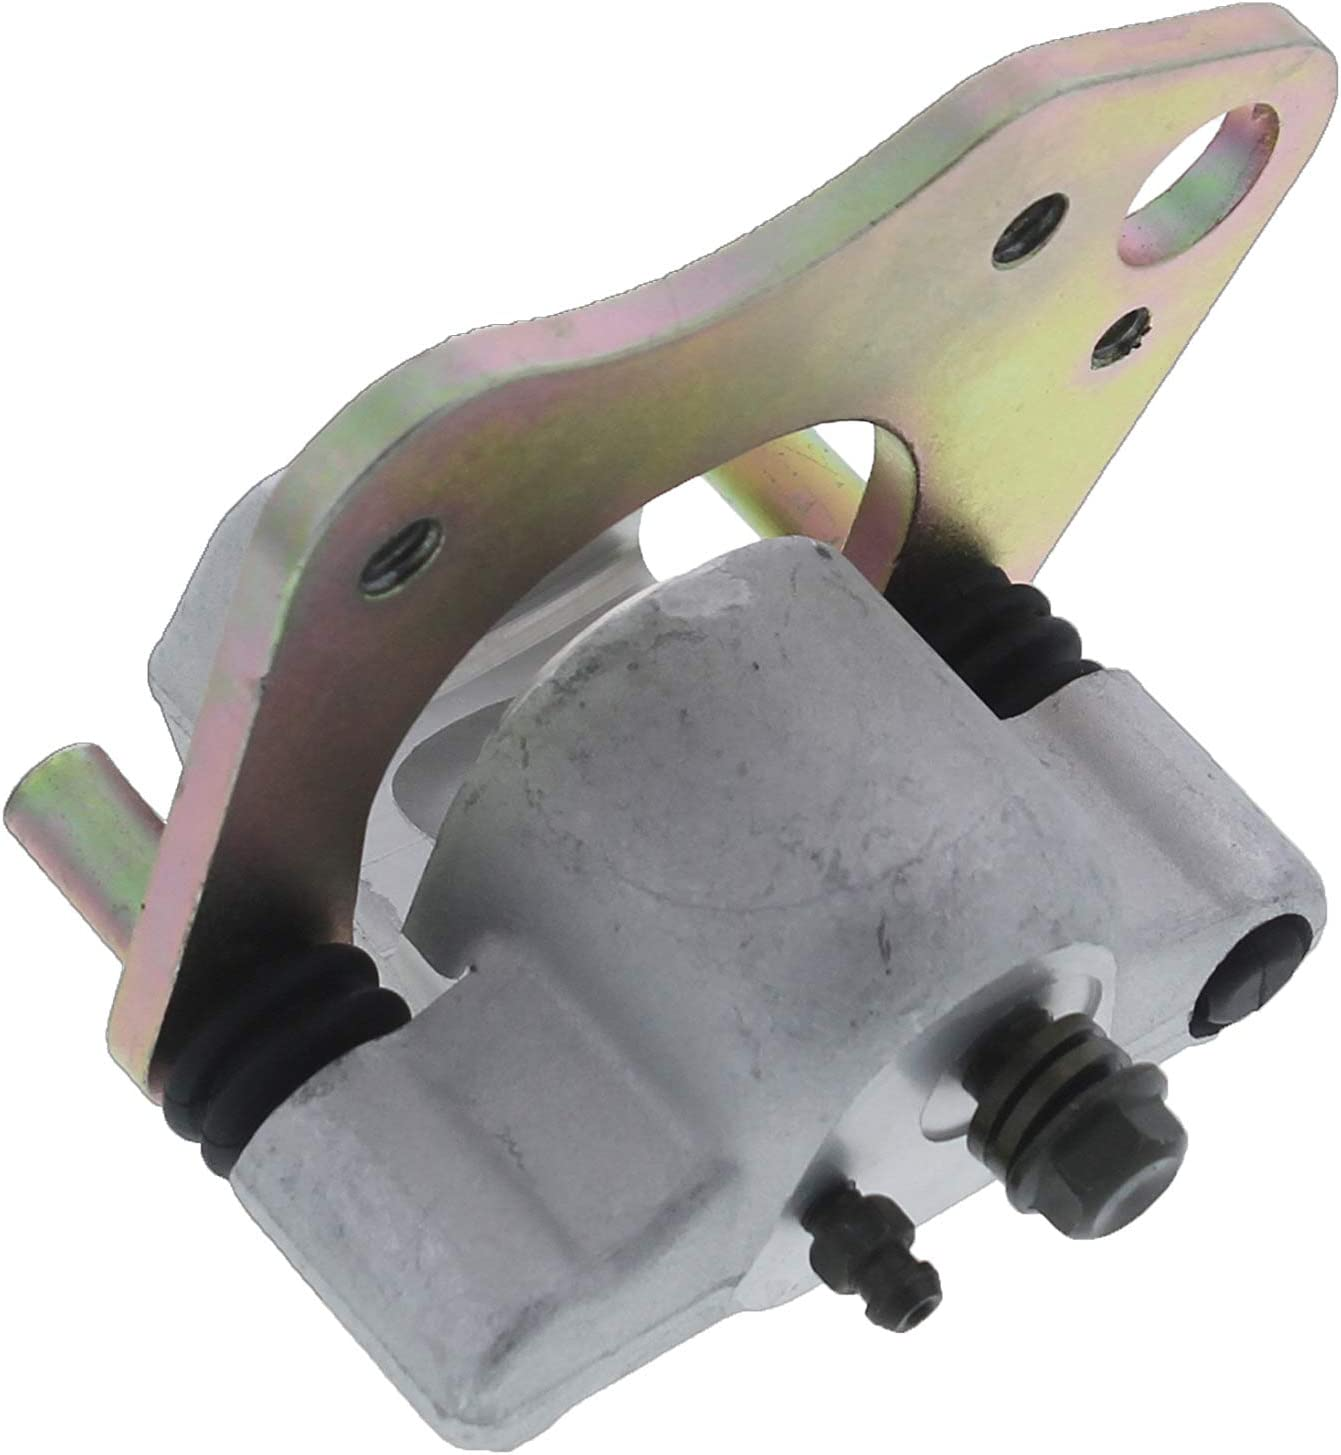 Brake Caliper Polaris 300 Xplorer 4x4 1996-1999 Front Left /& Right Race-Driven